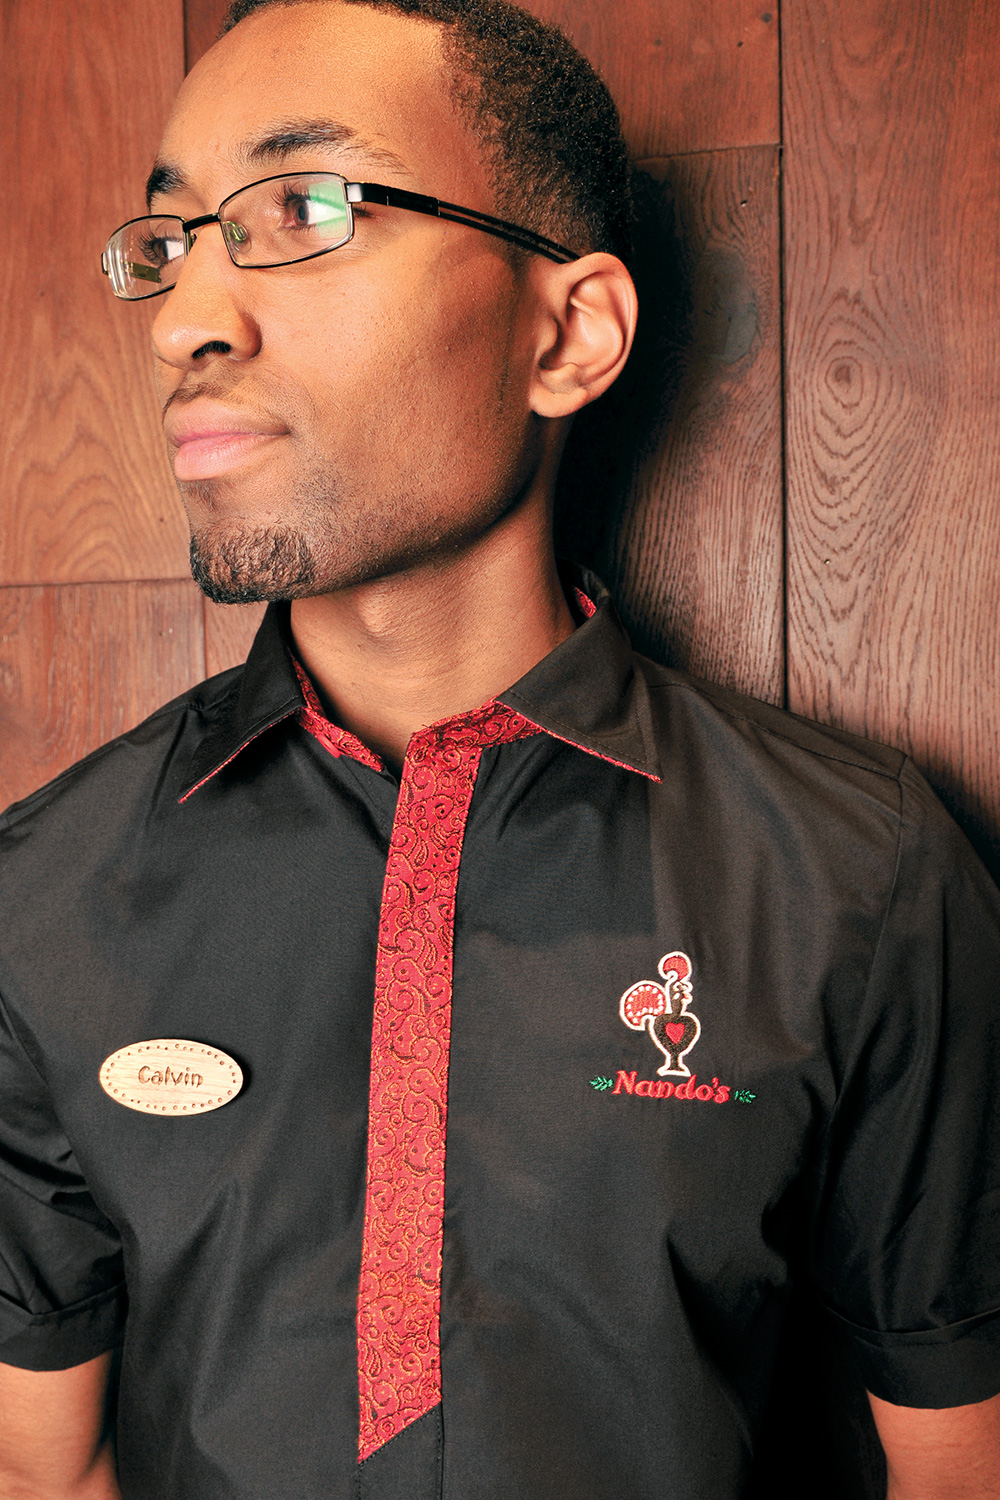 Mascot_Nandos_Uniform_3.jpg